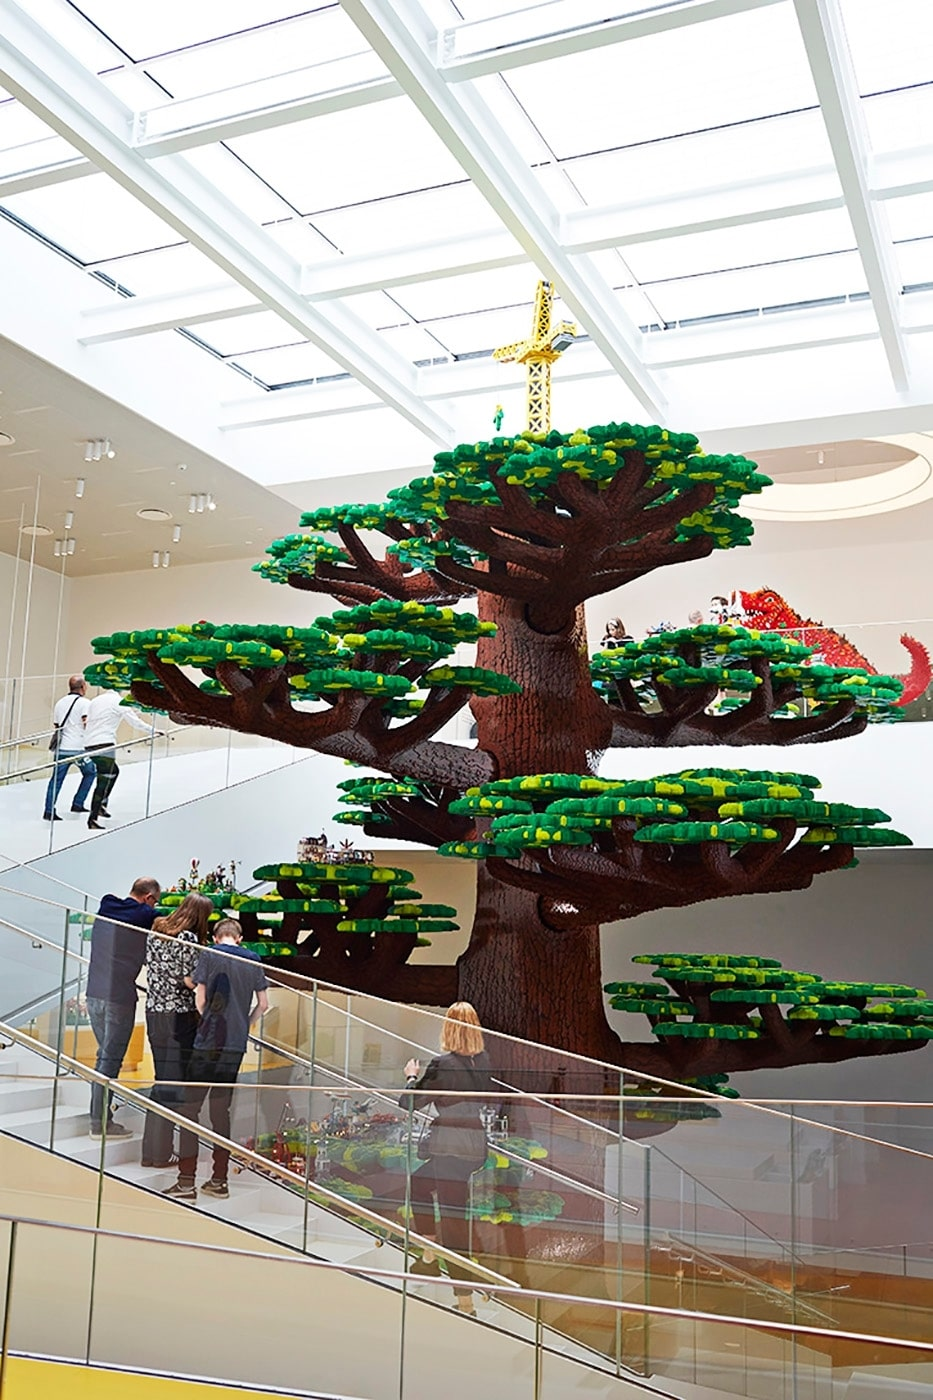 LEGO 21037 LEGO House - Tree Of Creativity